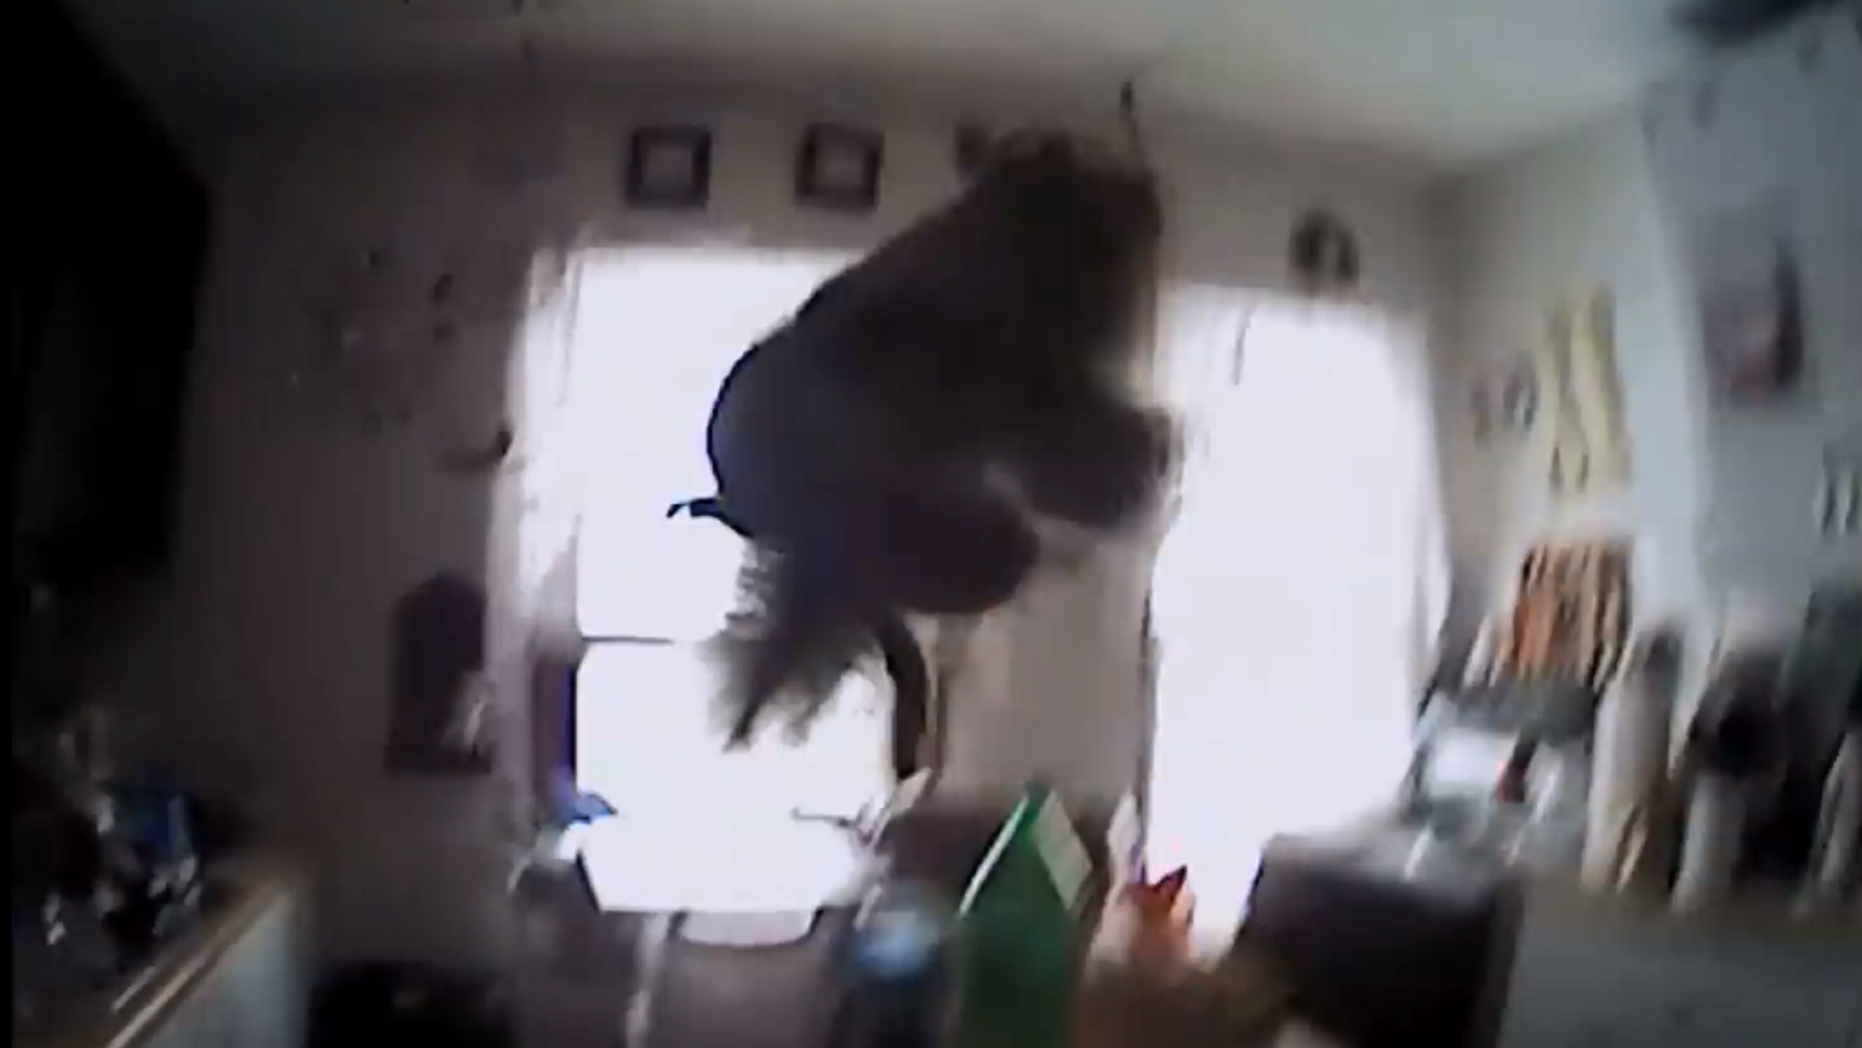 This framegrab shows the squirrel mid-flight before colliding with the police officer.